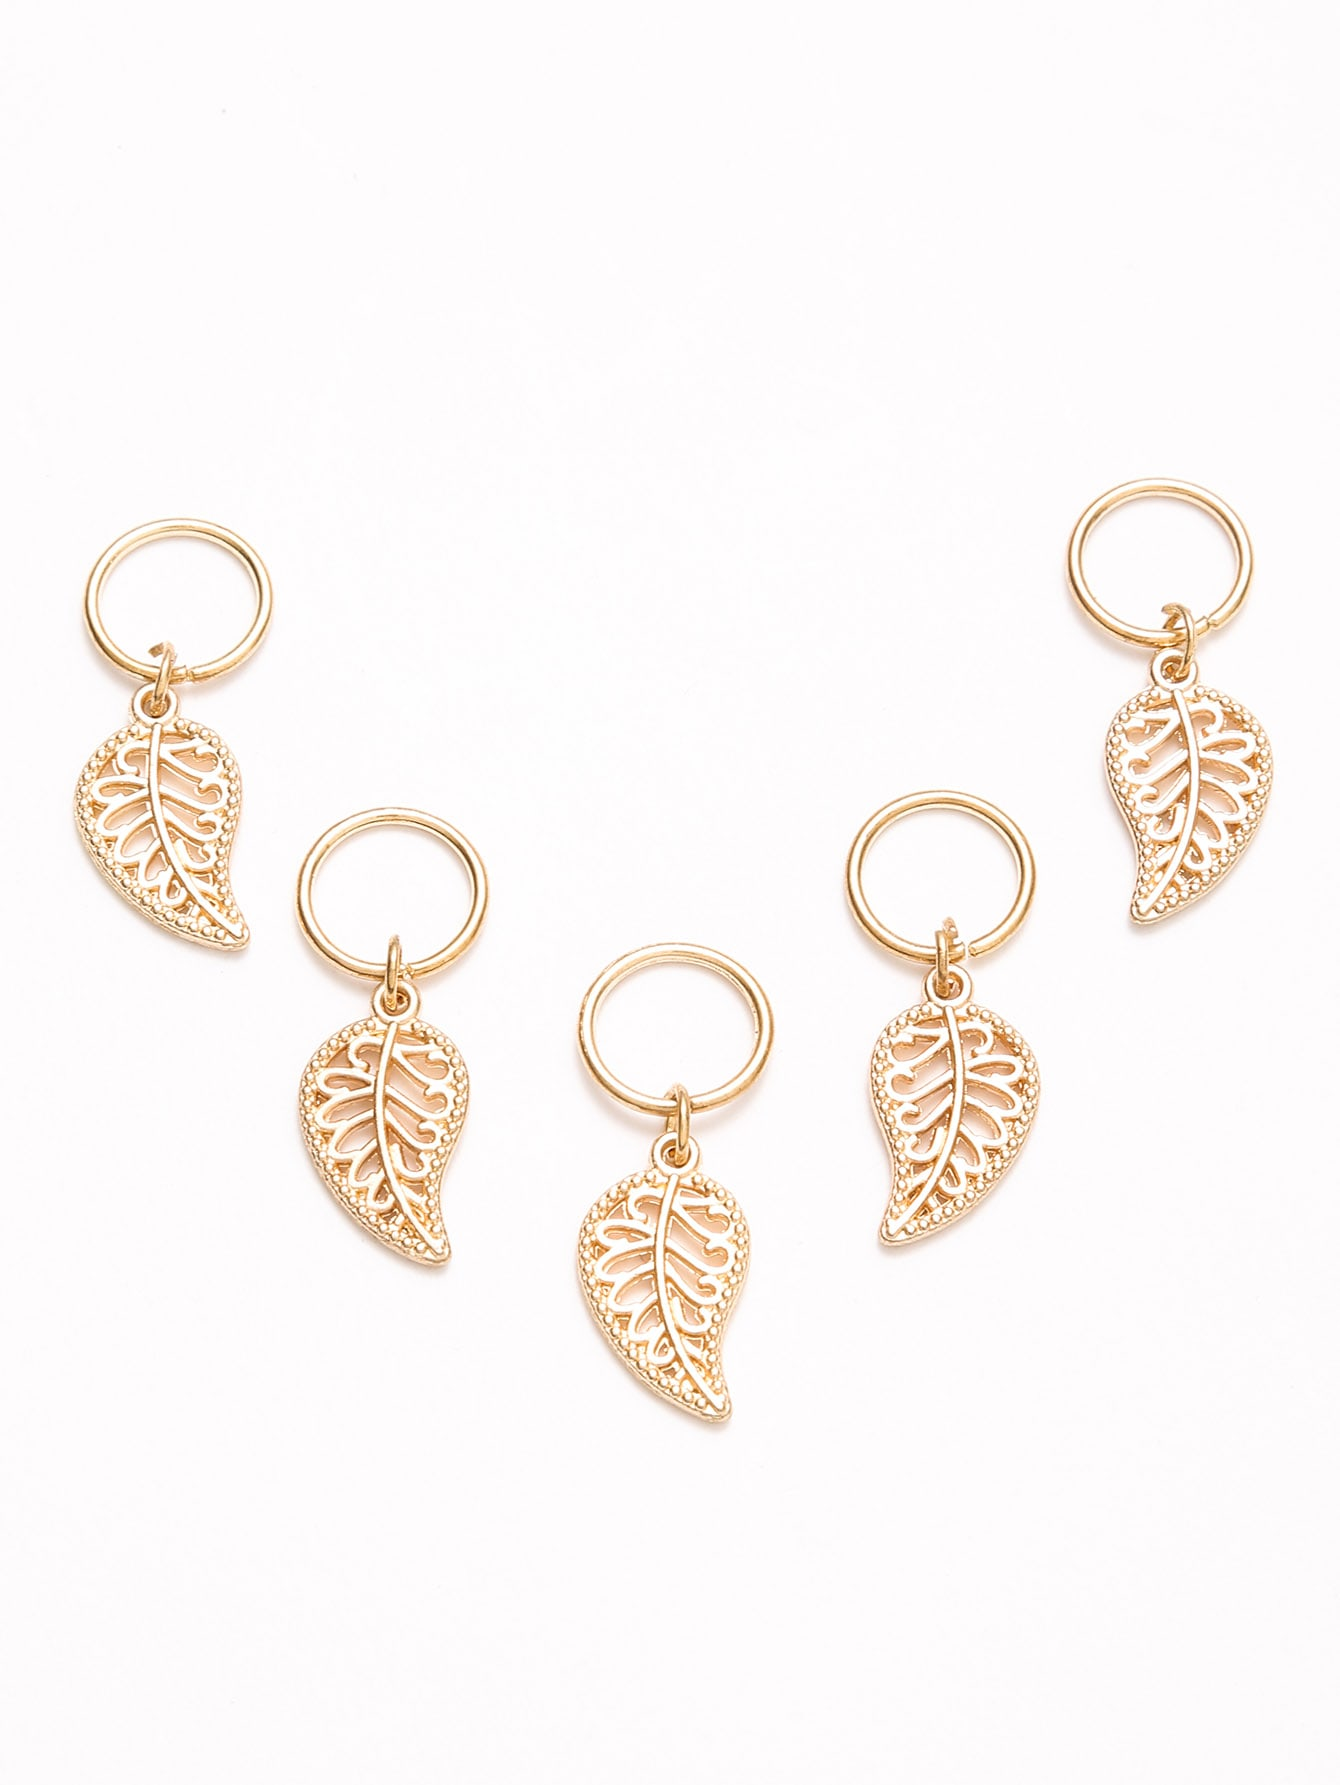 Image of 5PCS Gold Plated Leaf Hair Accessories